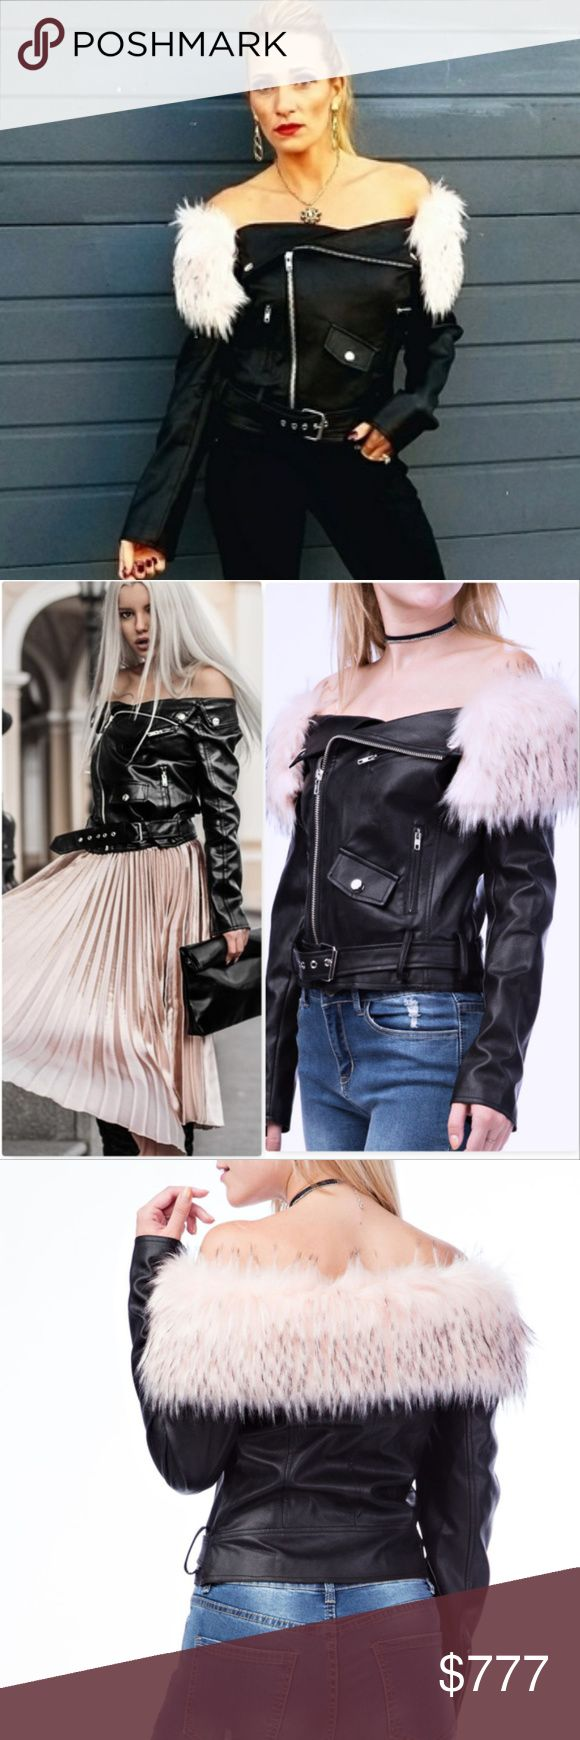 OFF SHOULDER FAUX LEATHER JACKET Brand new - Price is FIRM Boutique item NWOT  Grab this sexy and edgy leather jacket with removable pink fur collar to rock all season long!!! Pair with ripped up jeans for a HOT look!! This fully lined jacket feature fabulous zipper details, mini pocket detail, and belted detail ❤Faux Leather/Faux Fur  Additional pics on Instagram @modamecouture  . Jackets & Coats